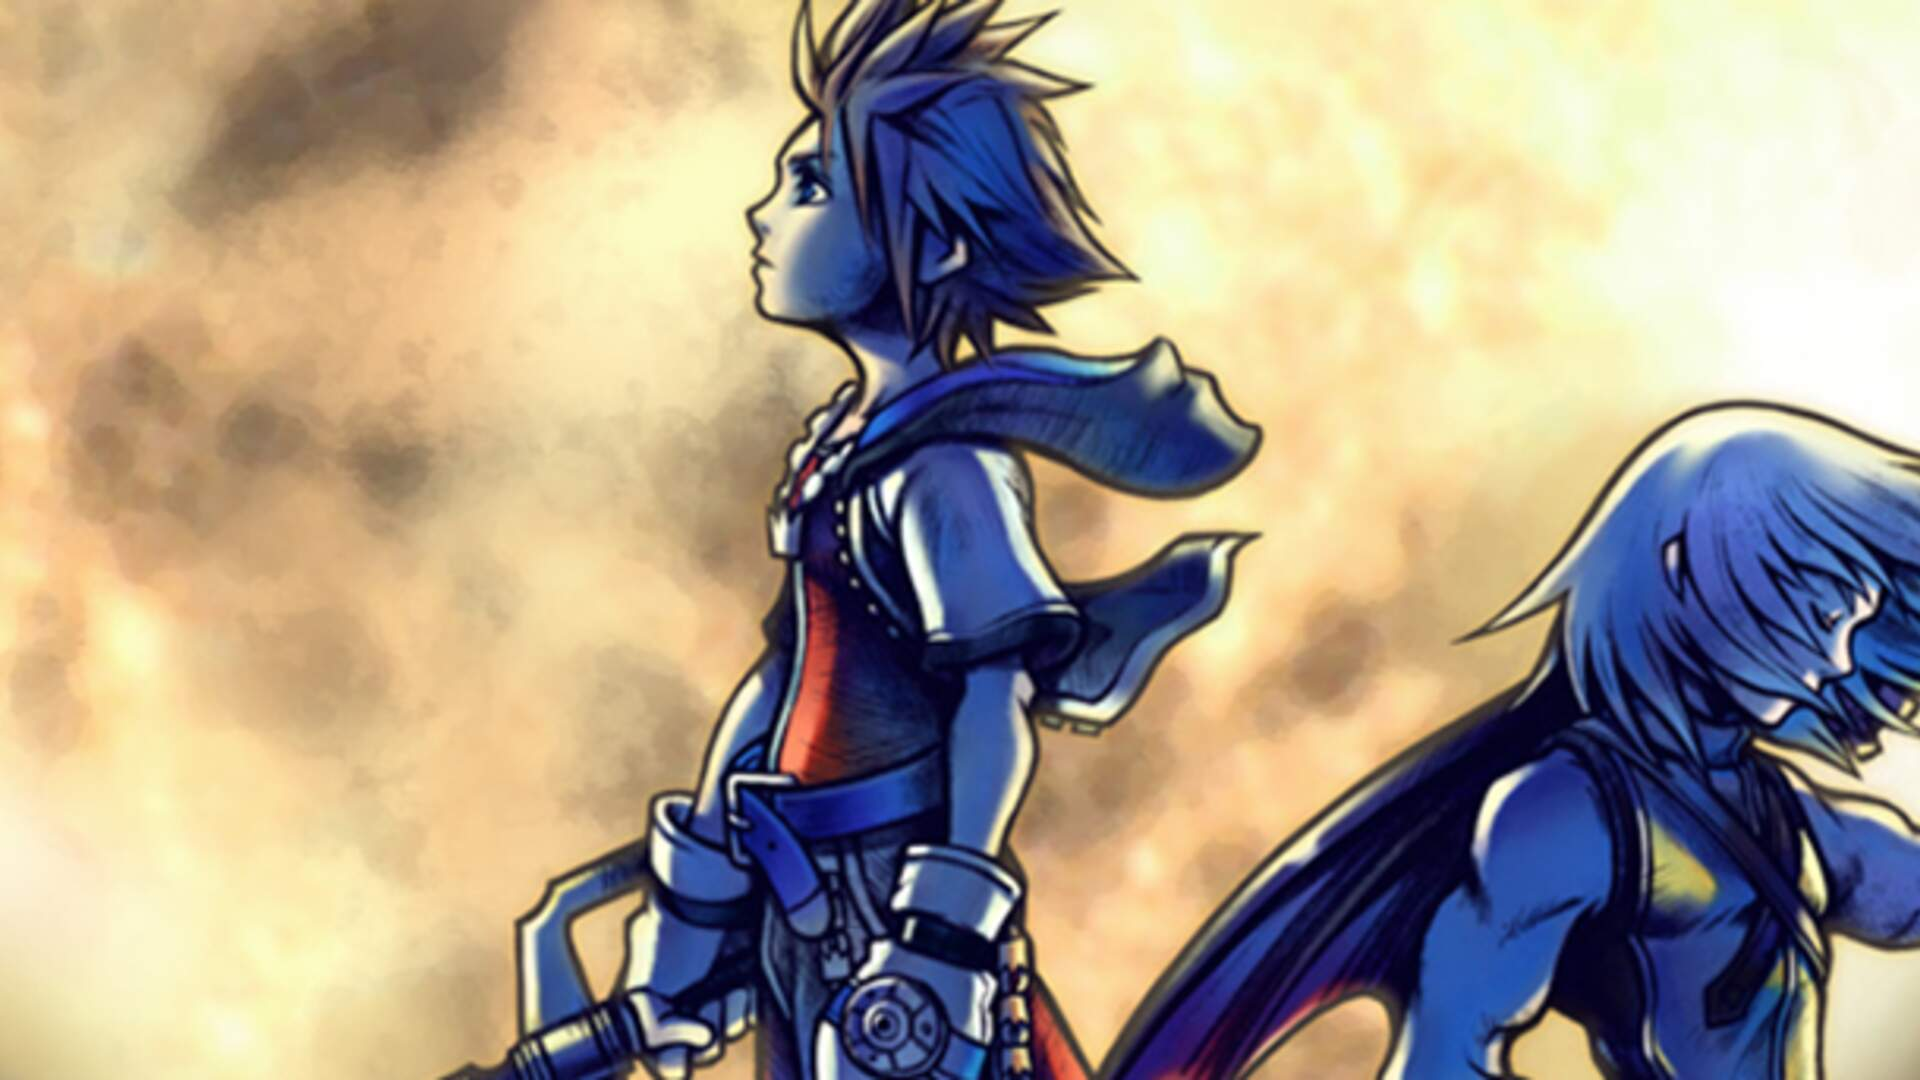 Why Kingdom Hearts Marked a Clear Turning Point for Both Disney and Square Enix